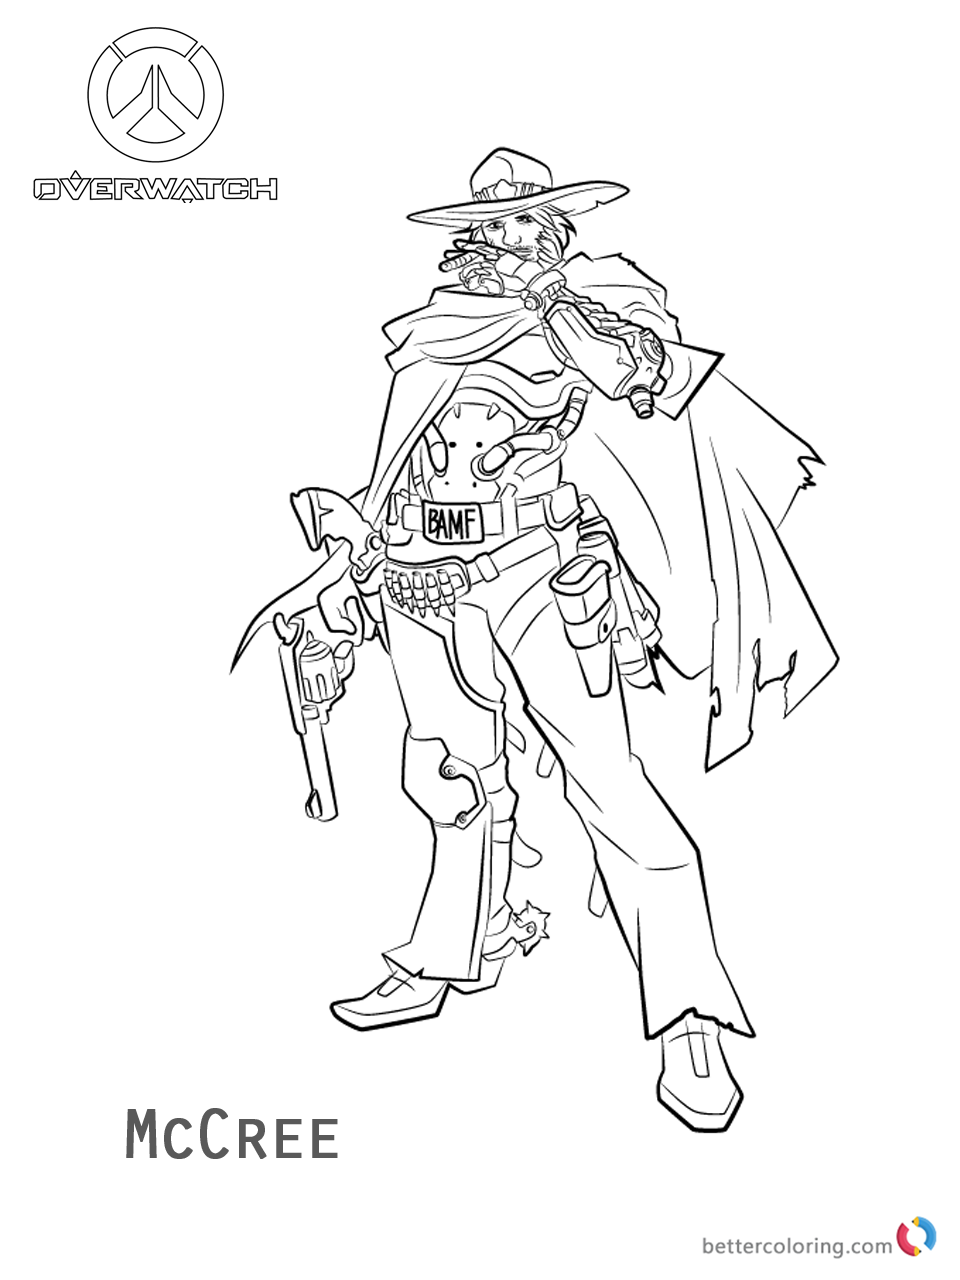 Mccree From Overwatch Coloring Pages Free Printable